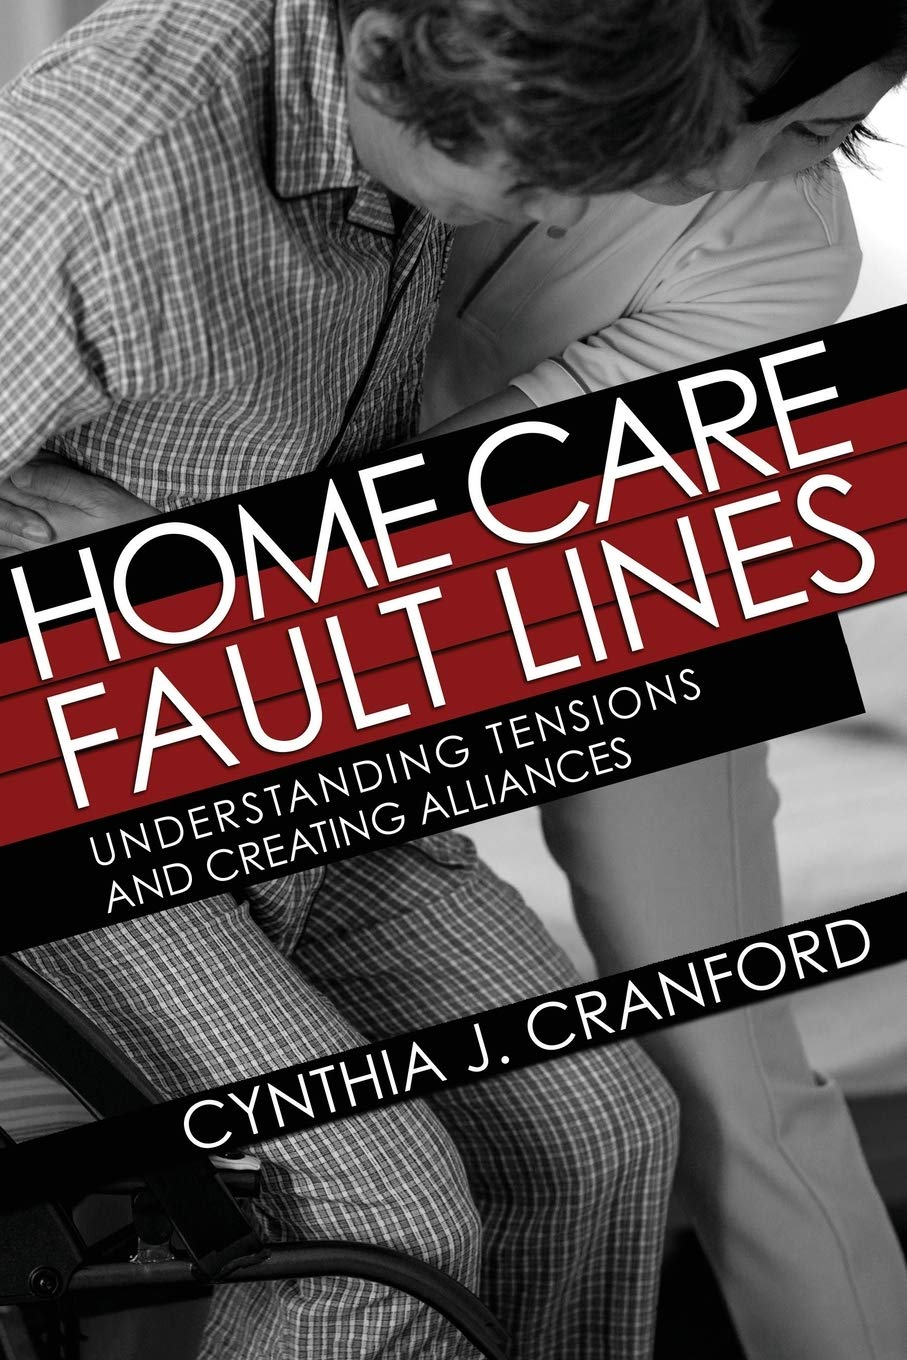 Image OfHome Care Fault Lines: Understanding Tensions And Creating Alliances (The Culture And Politics Of Health Care Work)